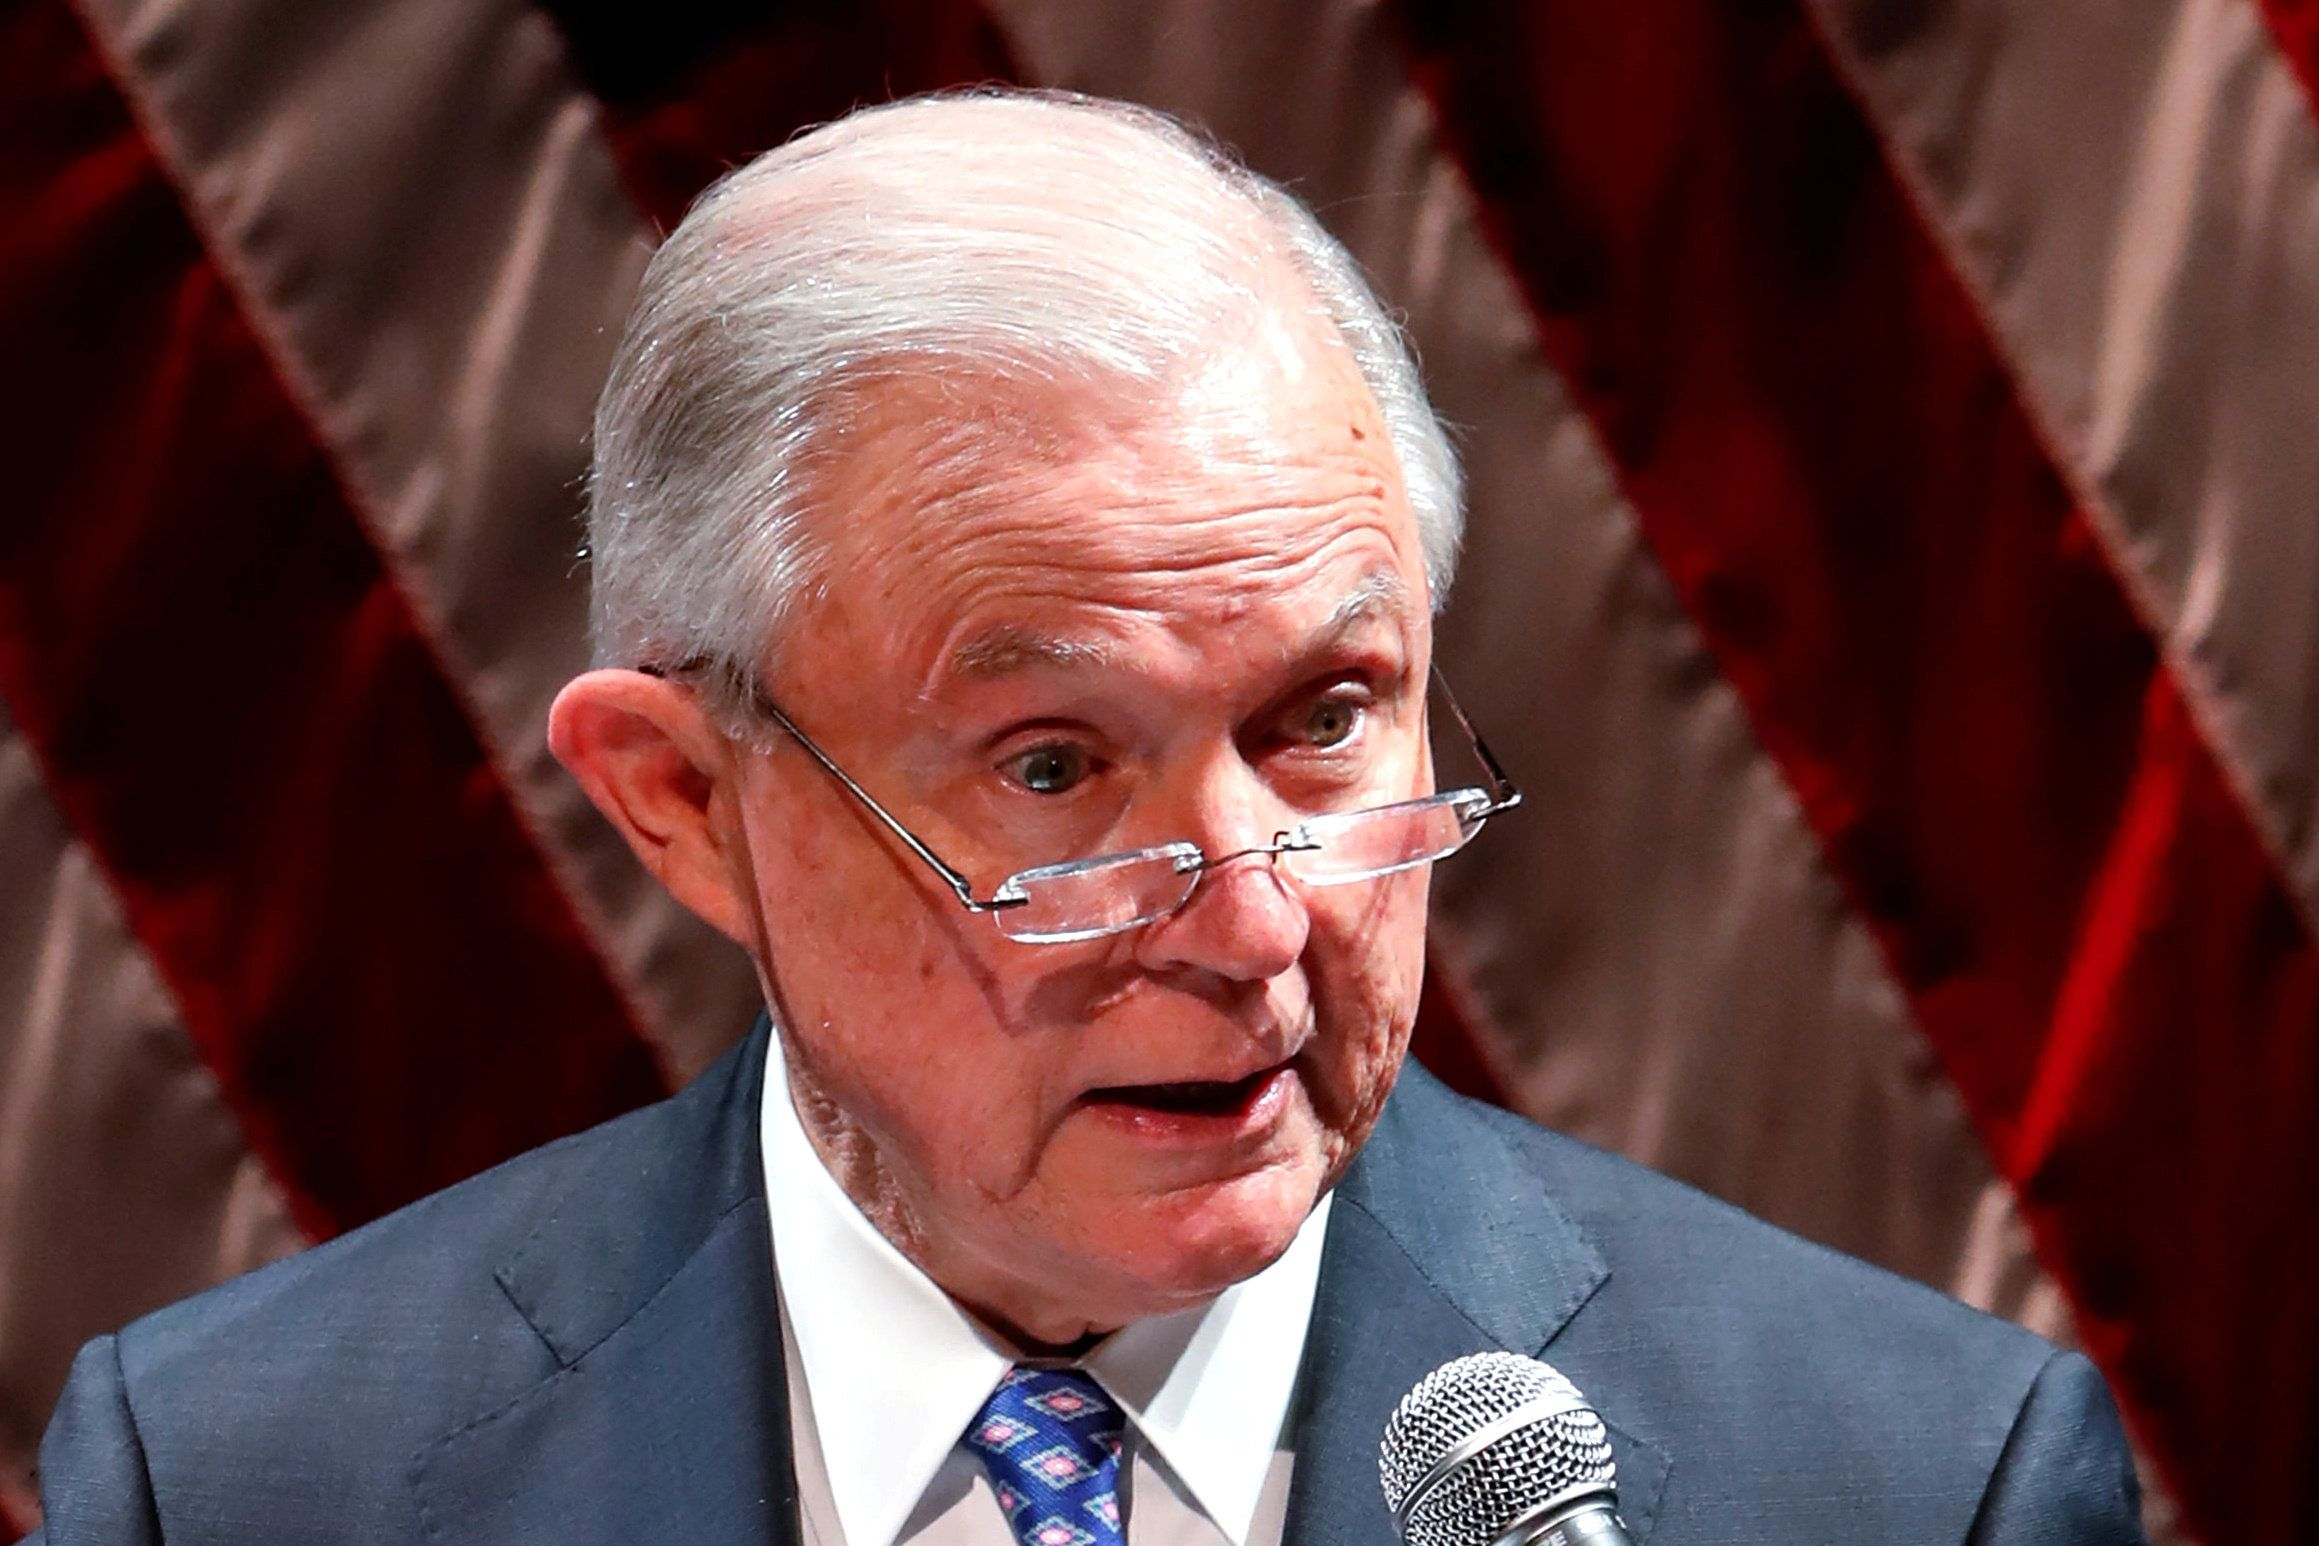 Attorney General Jeff Sessions is the head of the Department of Justice, which means he's the top boss for immigration judges